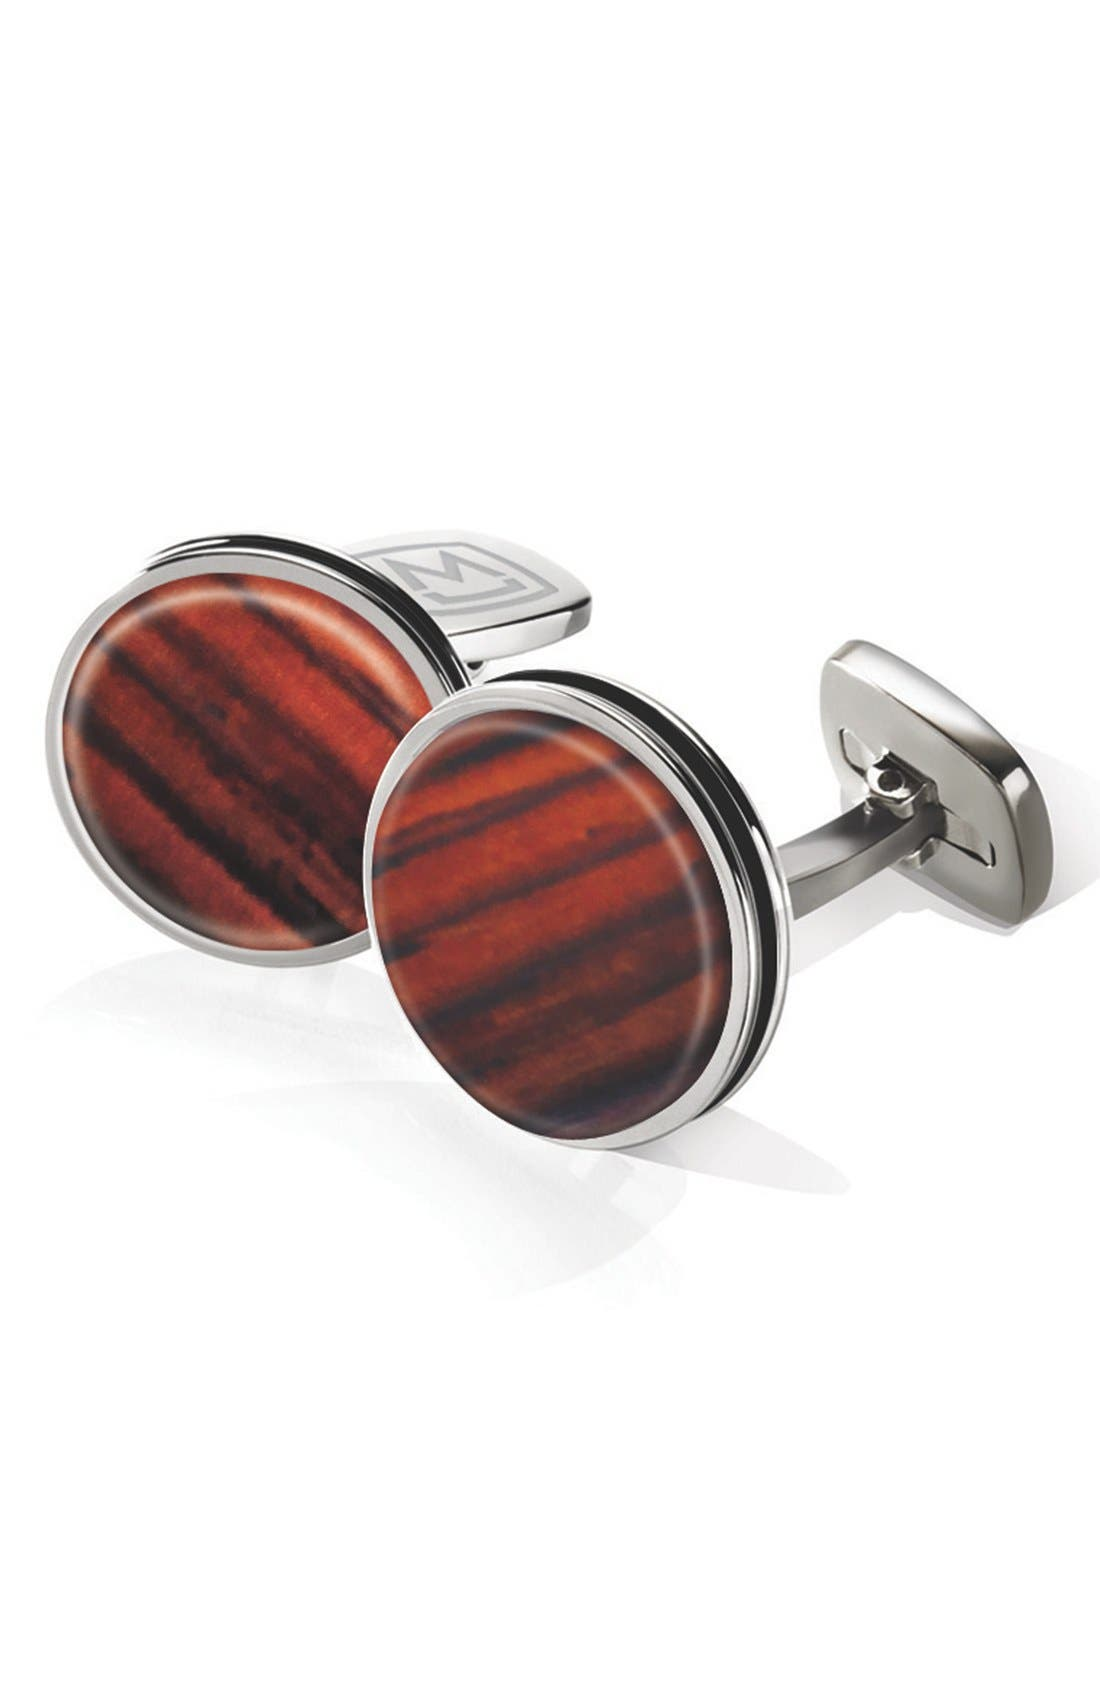 Cocobolo Cuff Links,                             Main thumbnail 1, color,                             Stainless Steel/ Cocobolo